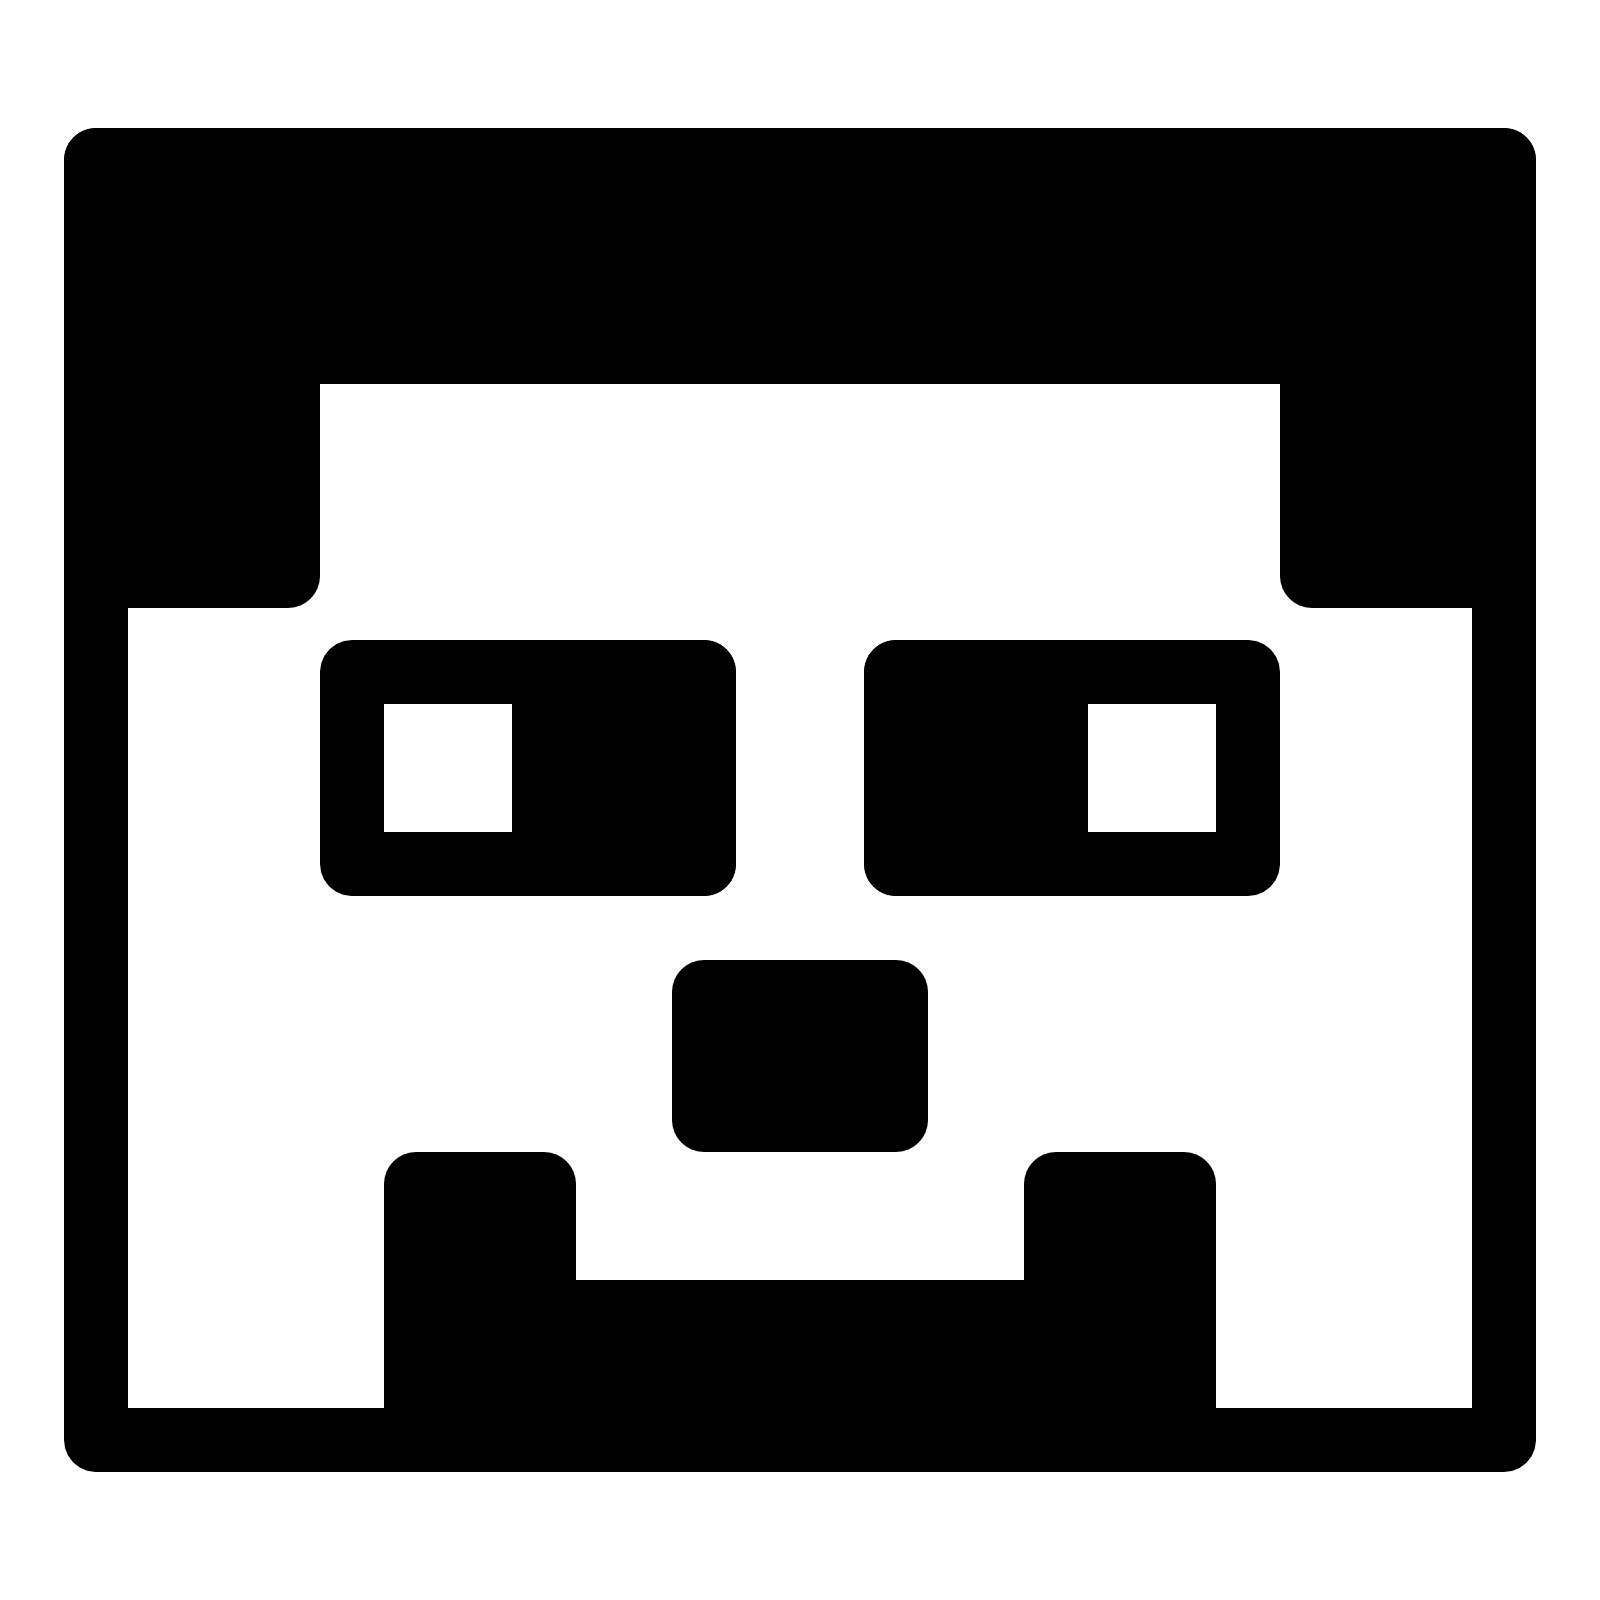 minecraft black and white pictures clipart black and white minecraft crafting table collection black pictures white and minecraft